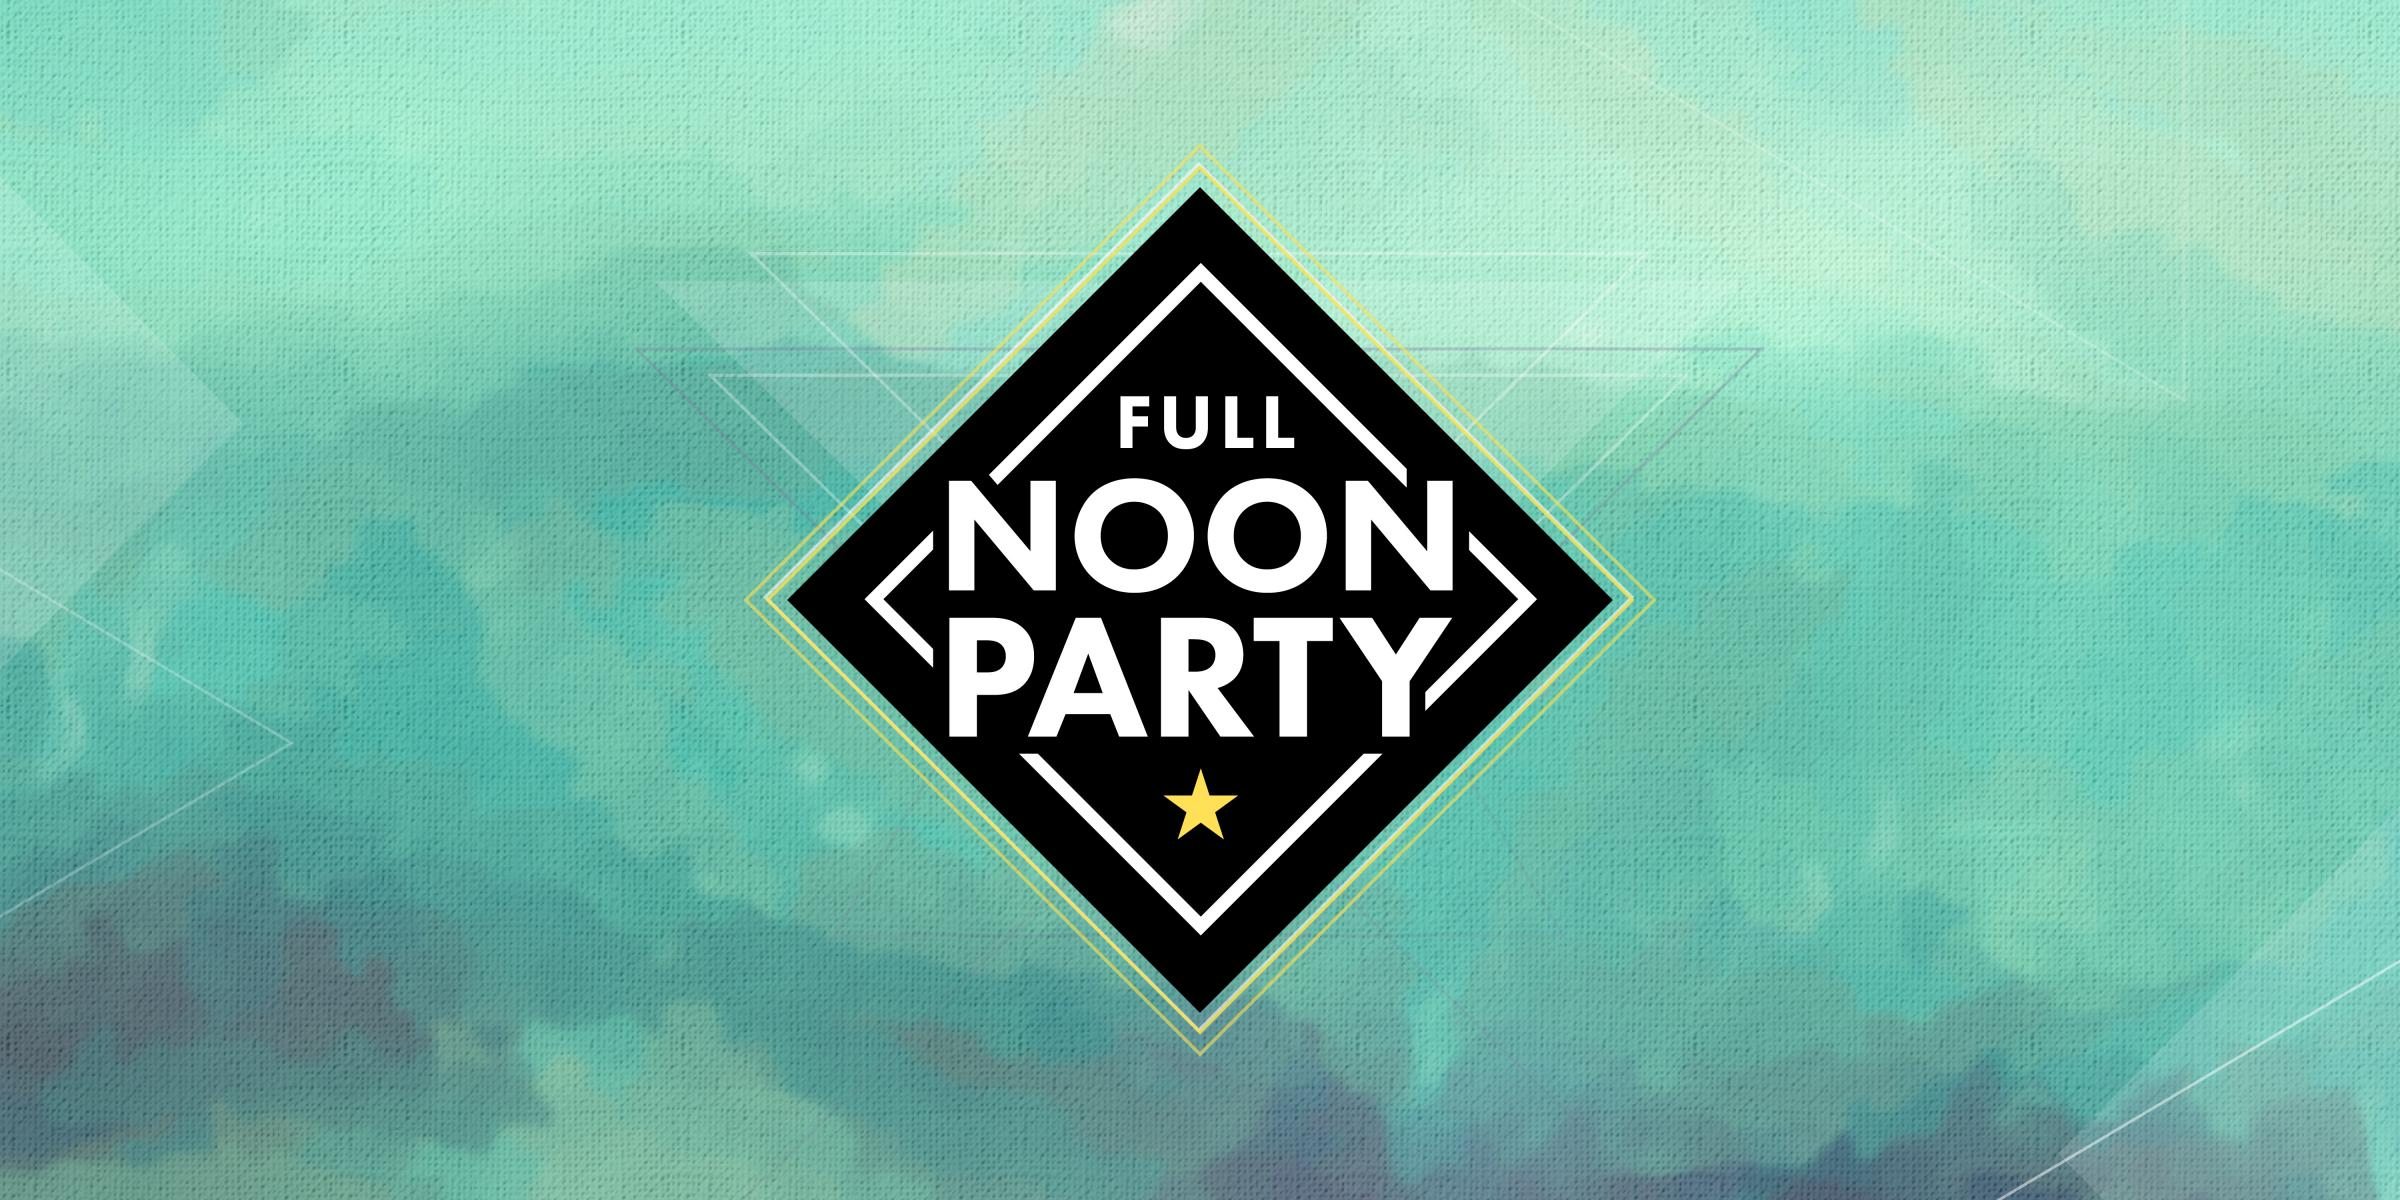 Full Noon Party